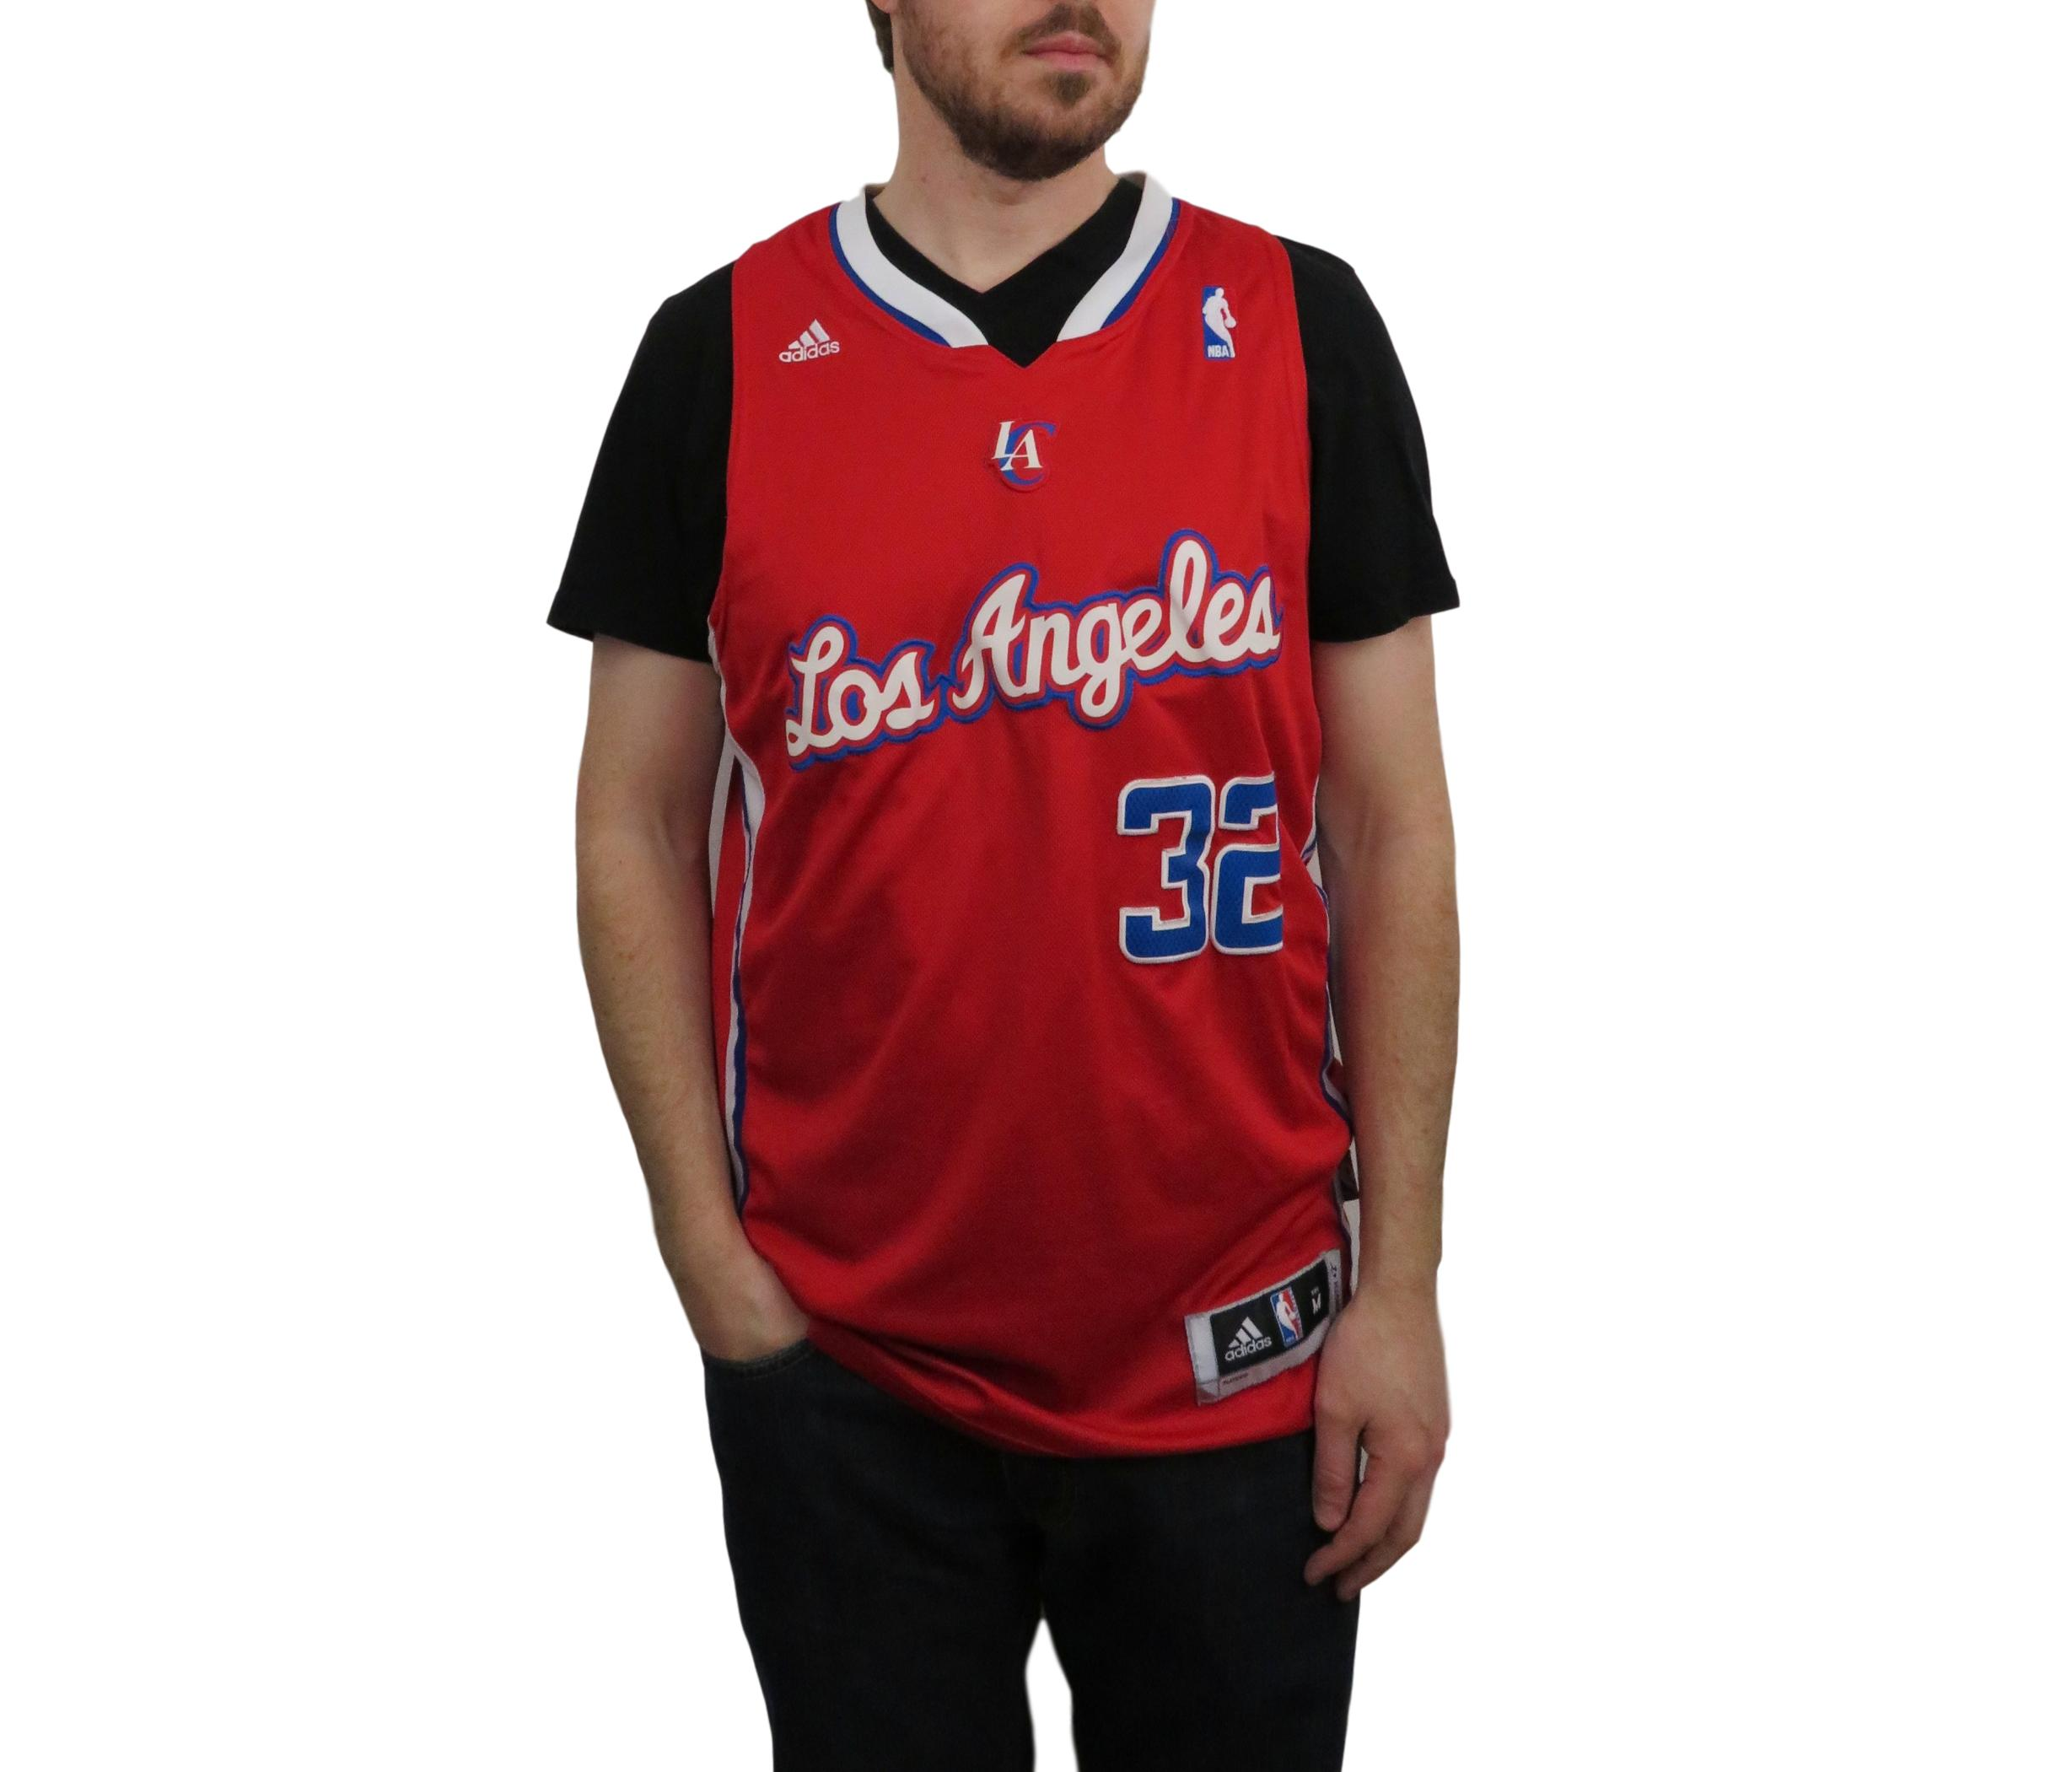 43dc469ee0e Adidas Adidas Mens Blake Griffin Los Angeles Clippers Nba Jersey ...